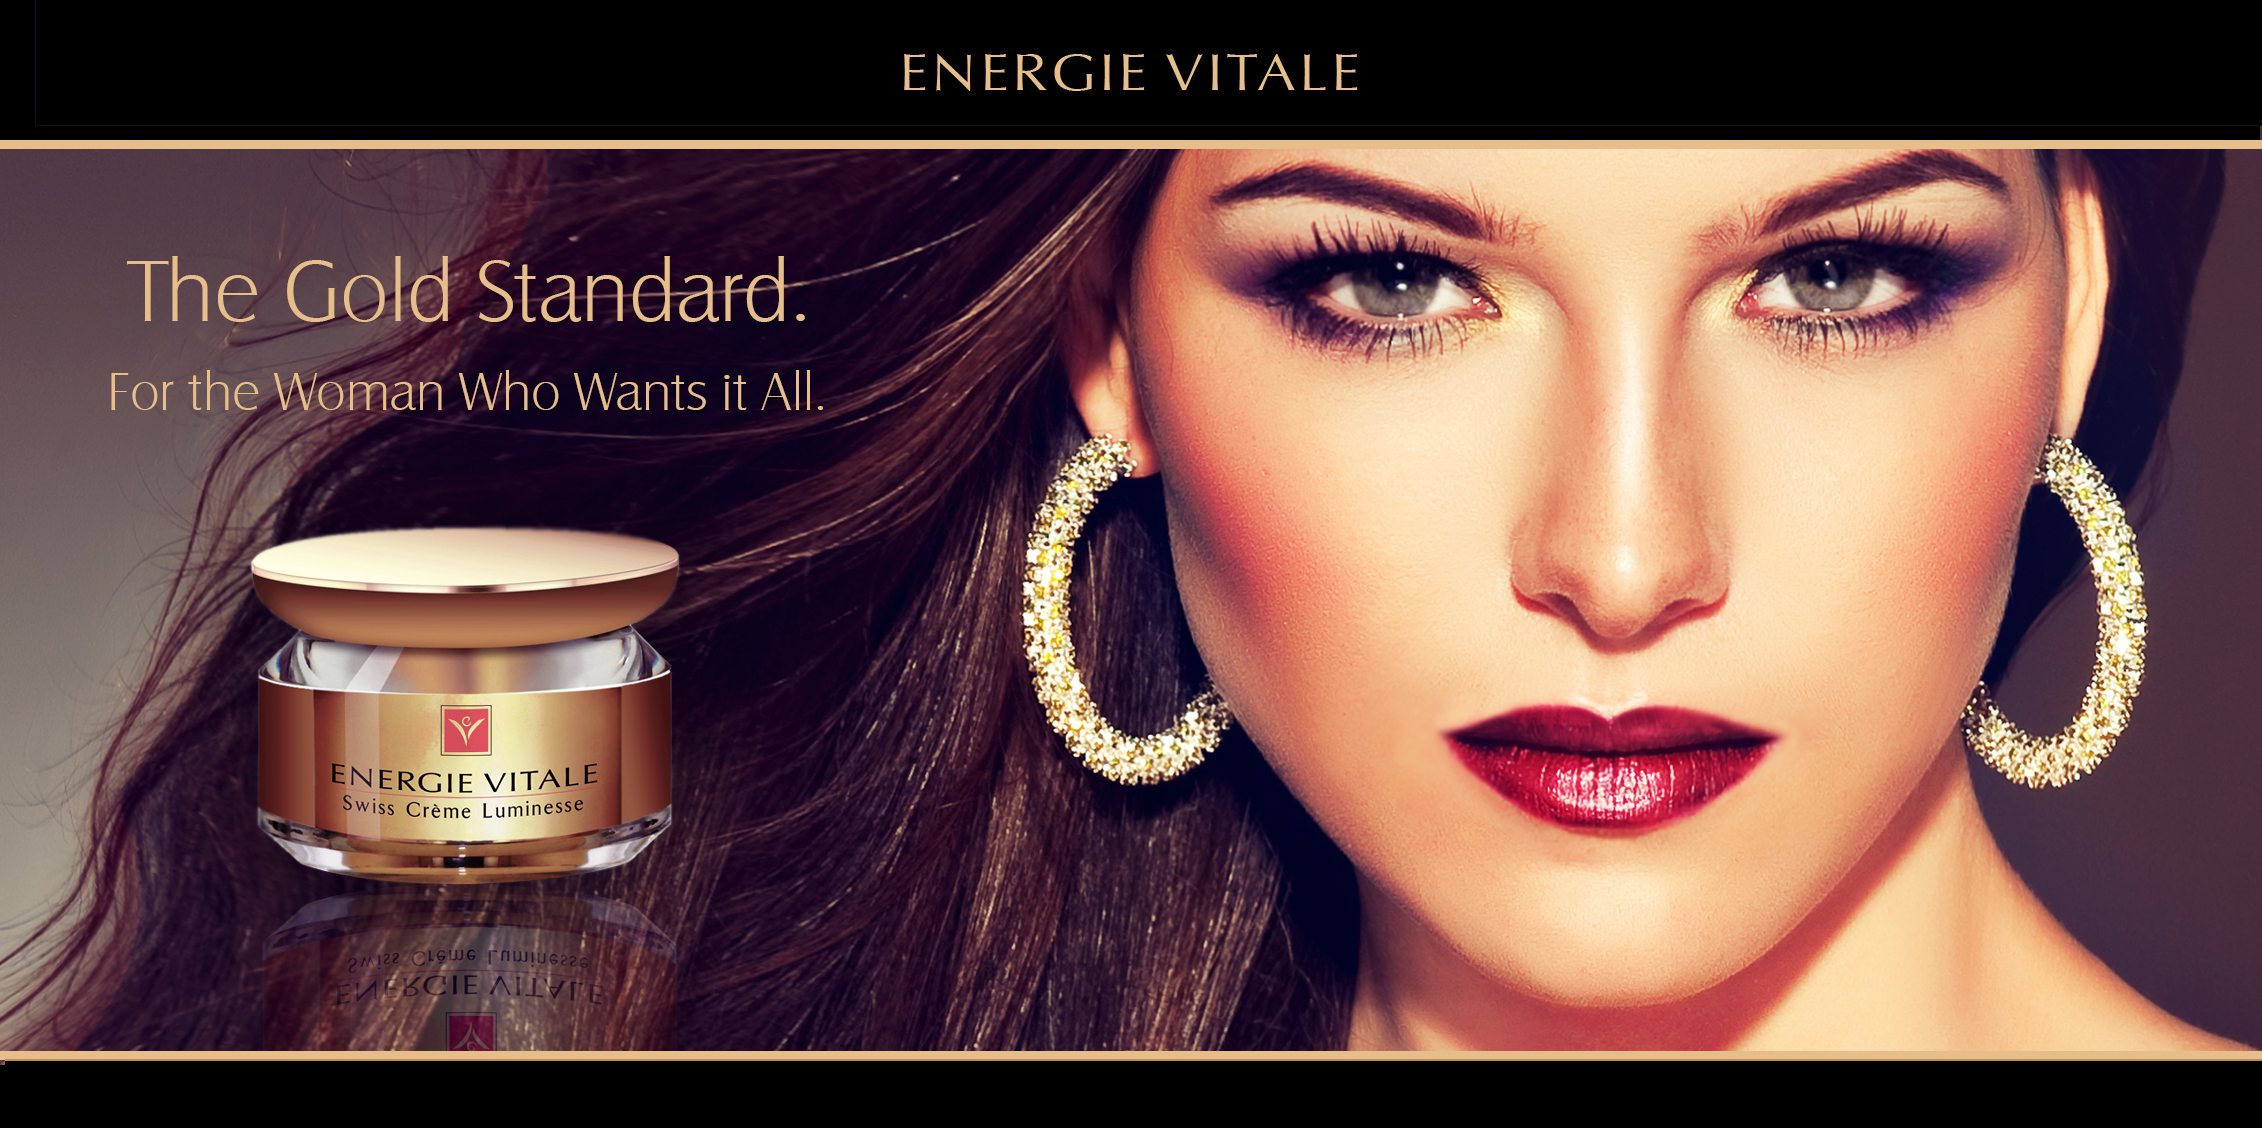 ENERGIE VITALE GOLD AD